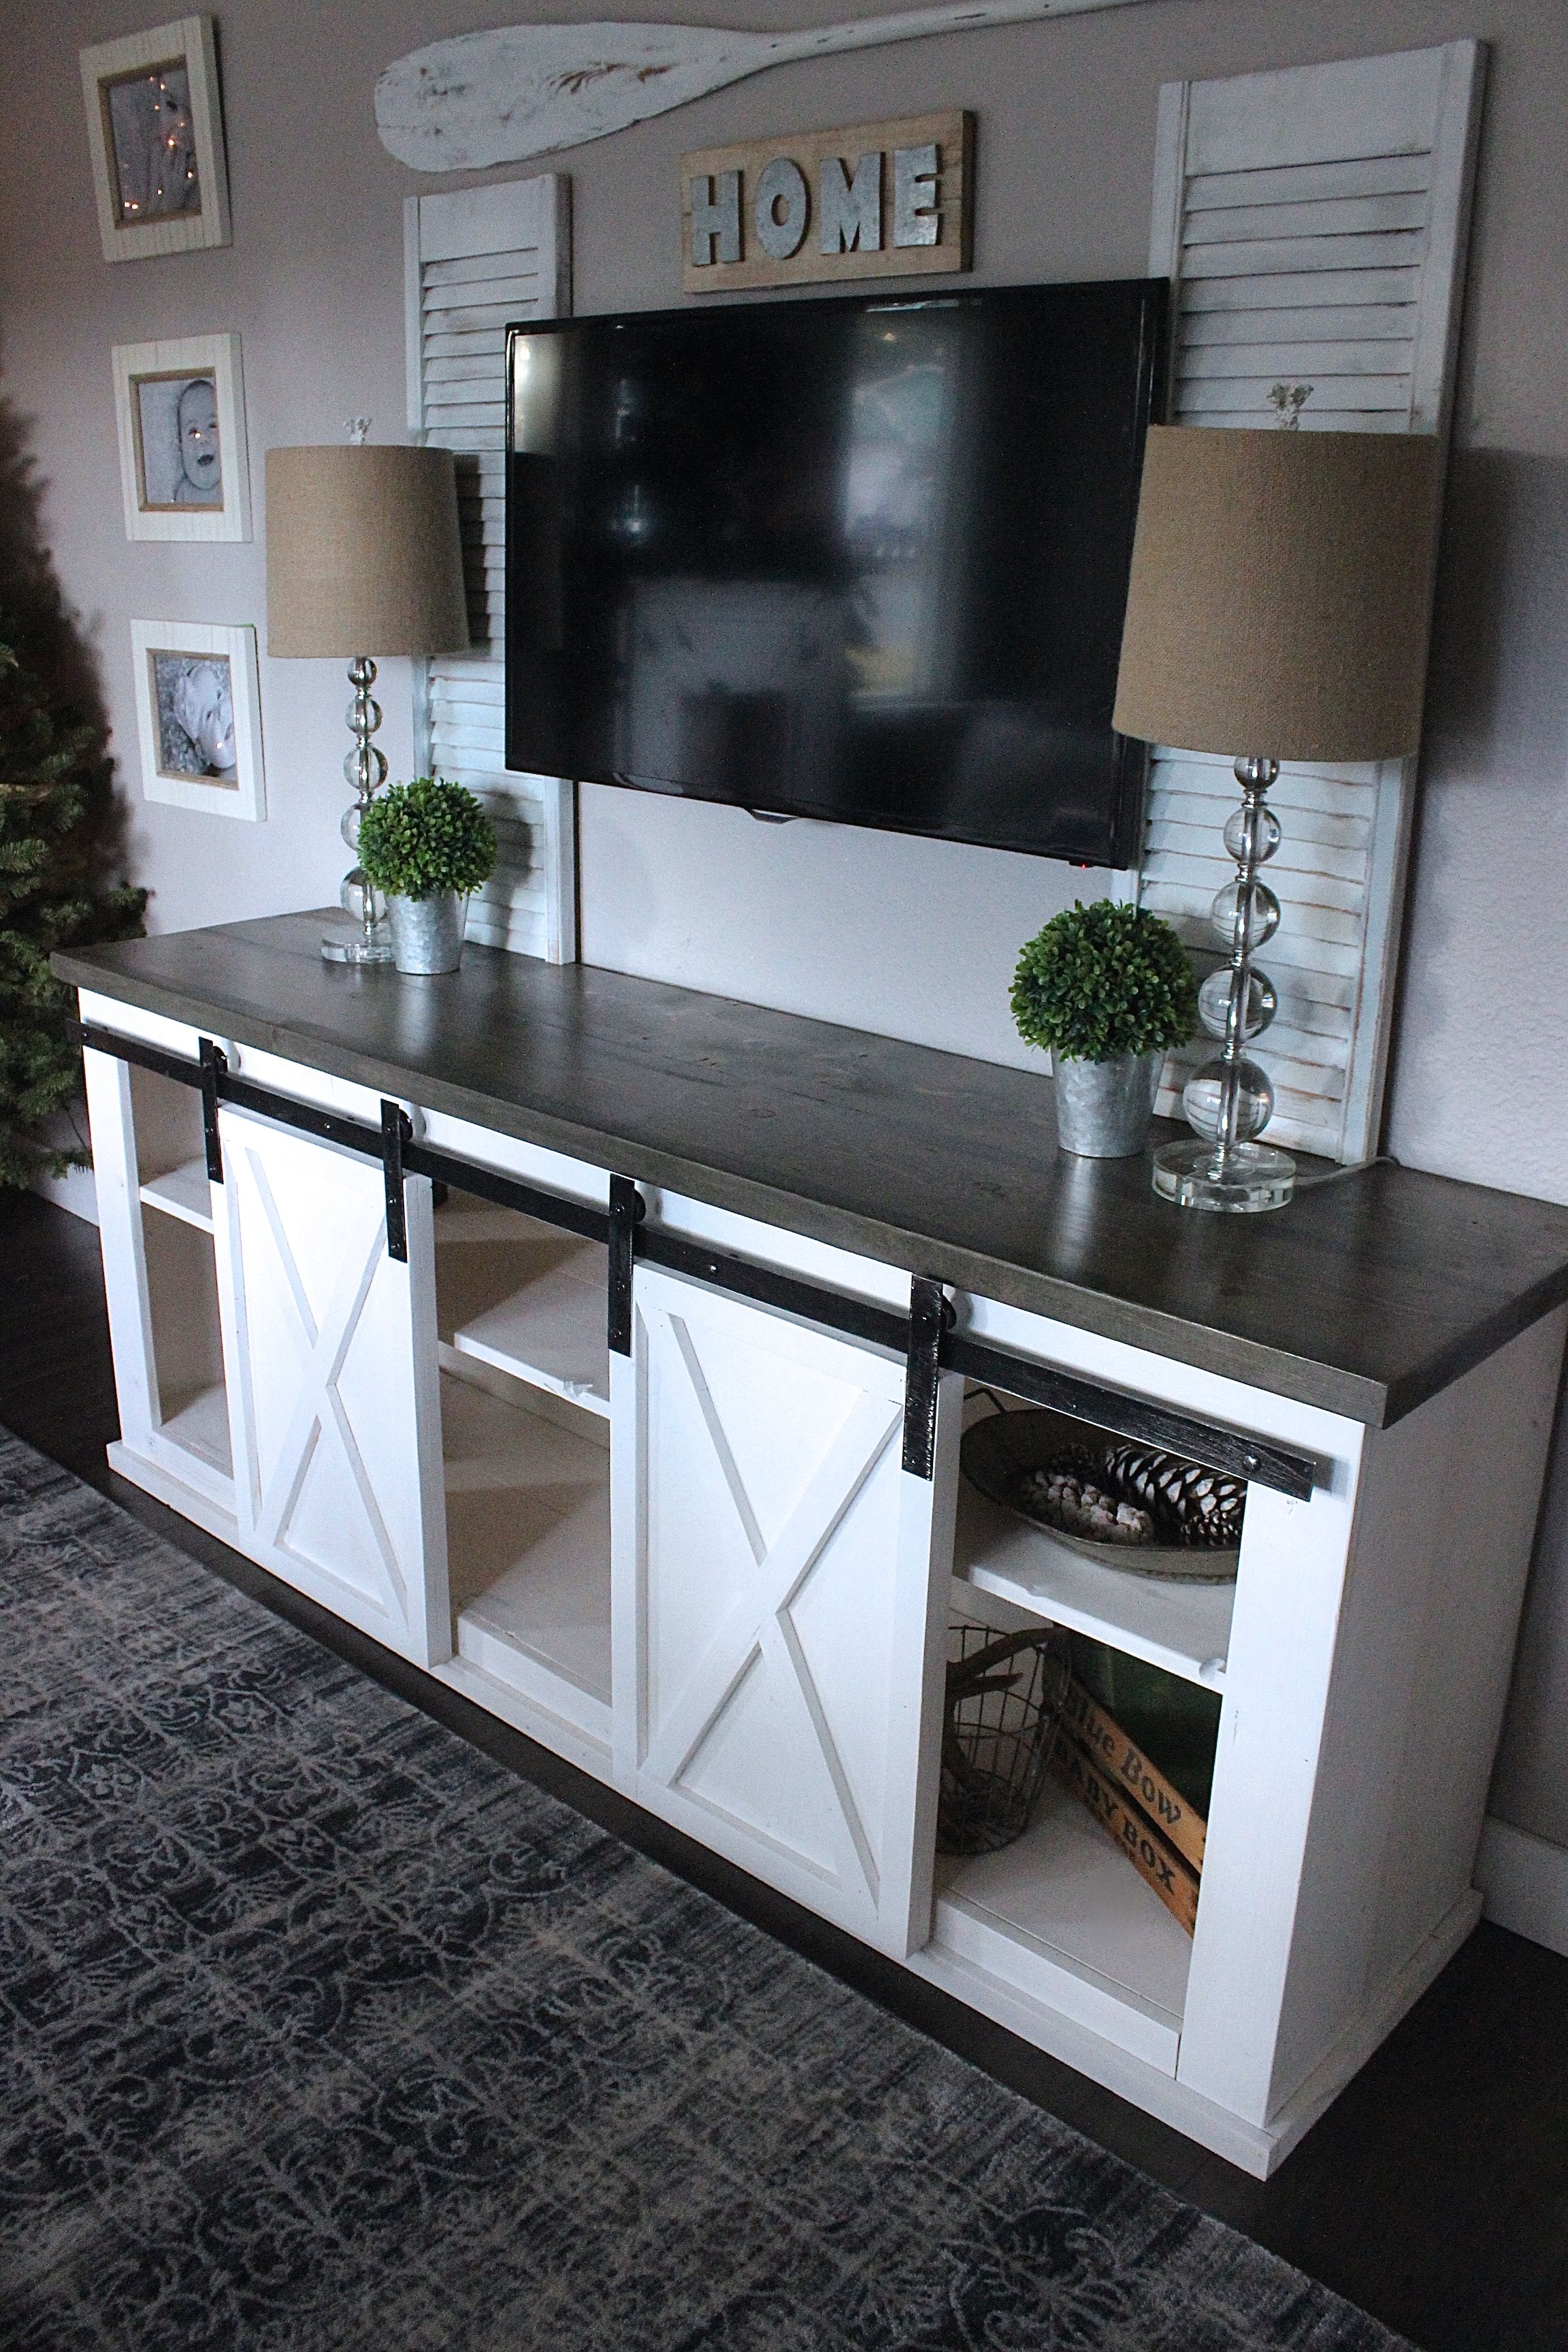 50 creative diy tv stand ideas for your room interior living dining room pinterest. Black Bedroom Furniture Sets. Home Design Ideas